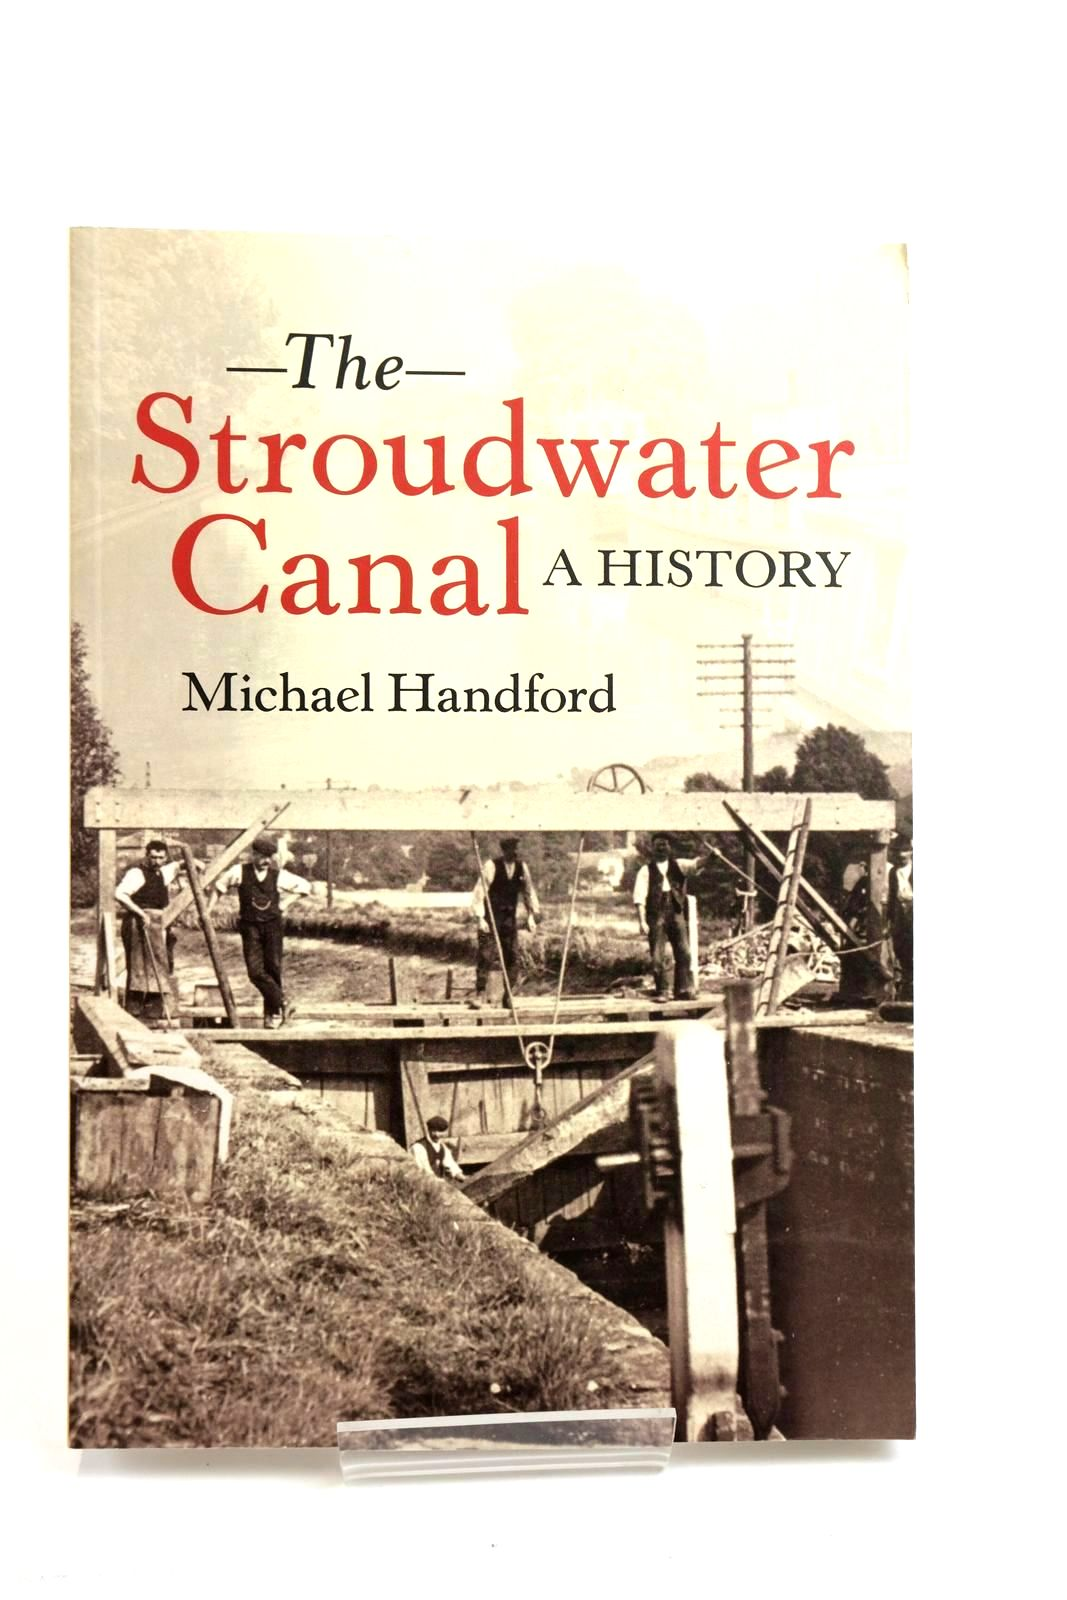 Photo of THE STROUDWATER CANAL A HISTORY written by Handford, Michael published by Amberley Publishing (STOCK CODE: 1321480)  for sale by Stella & Rose's Books